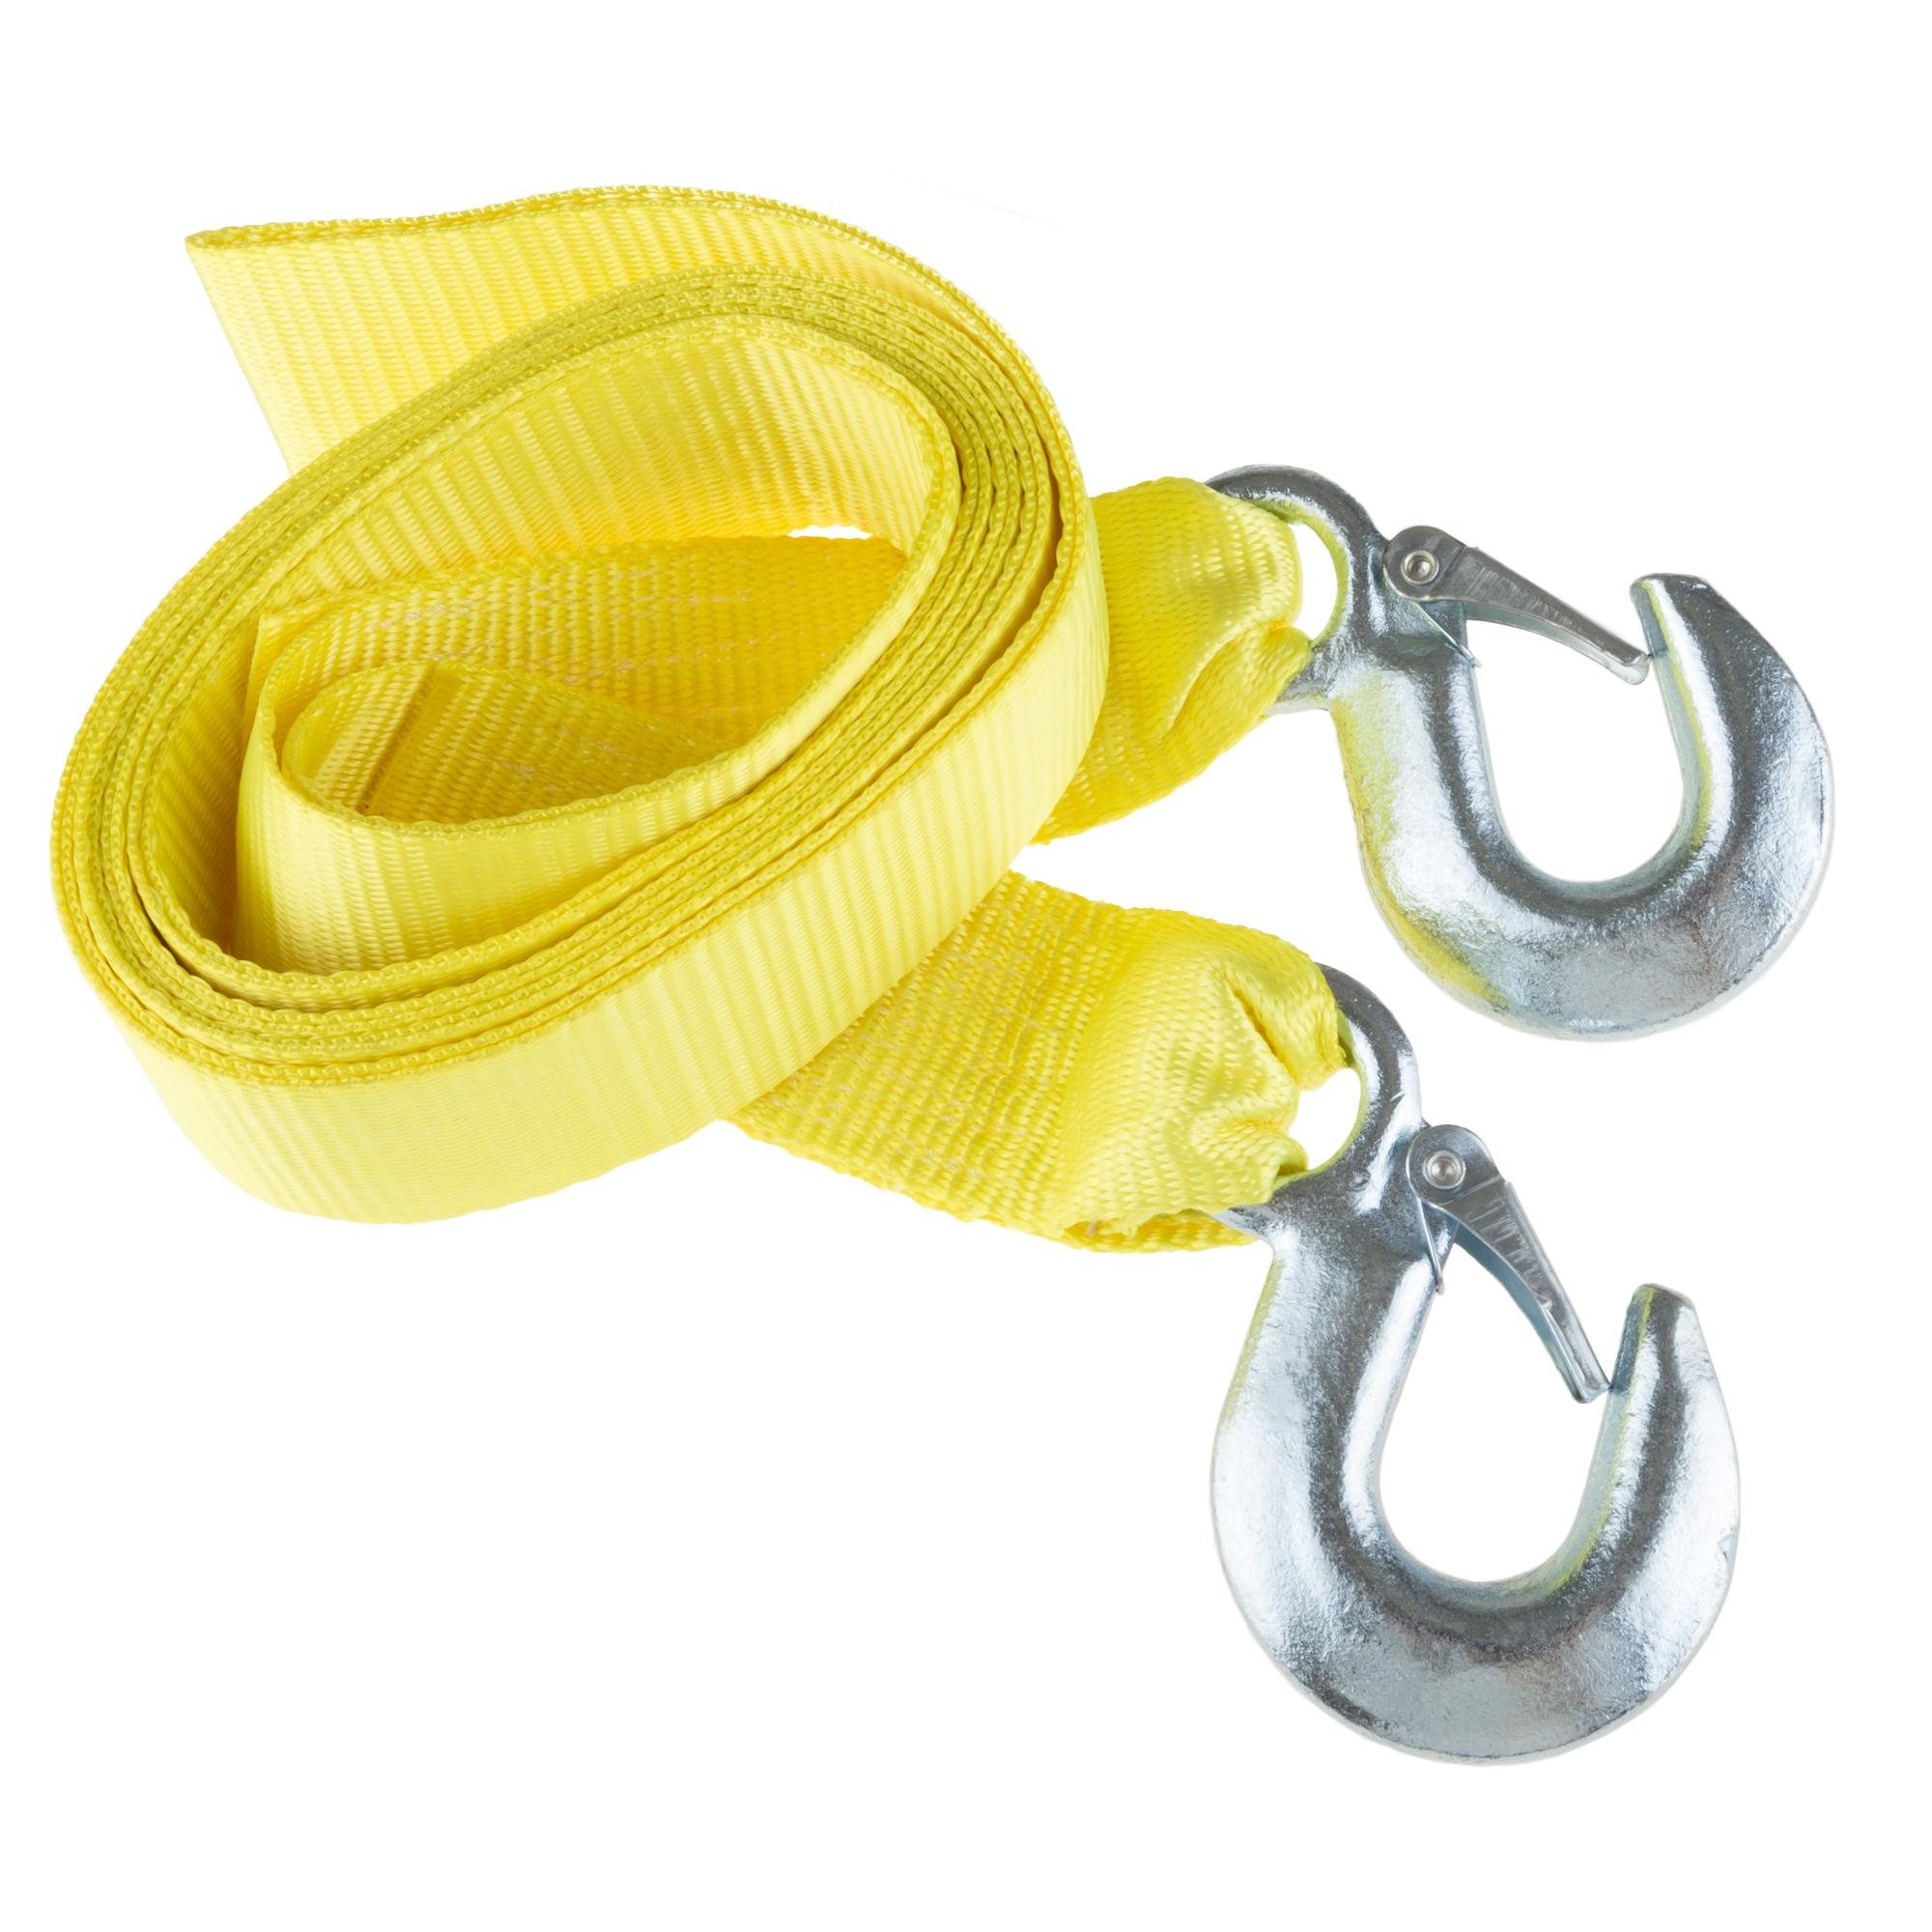 Tow Strap 6000 lb Capacity- High Quality Weather Resistant Nylon Rope Forged Steel Hook Construction by Stalwart